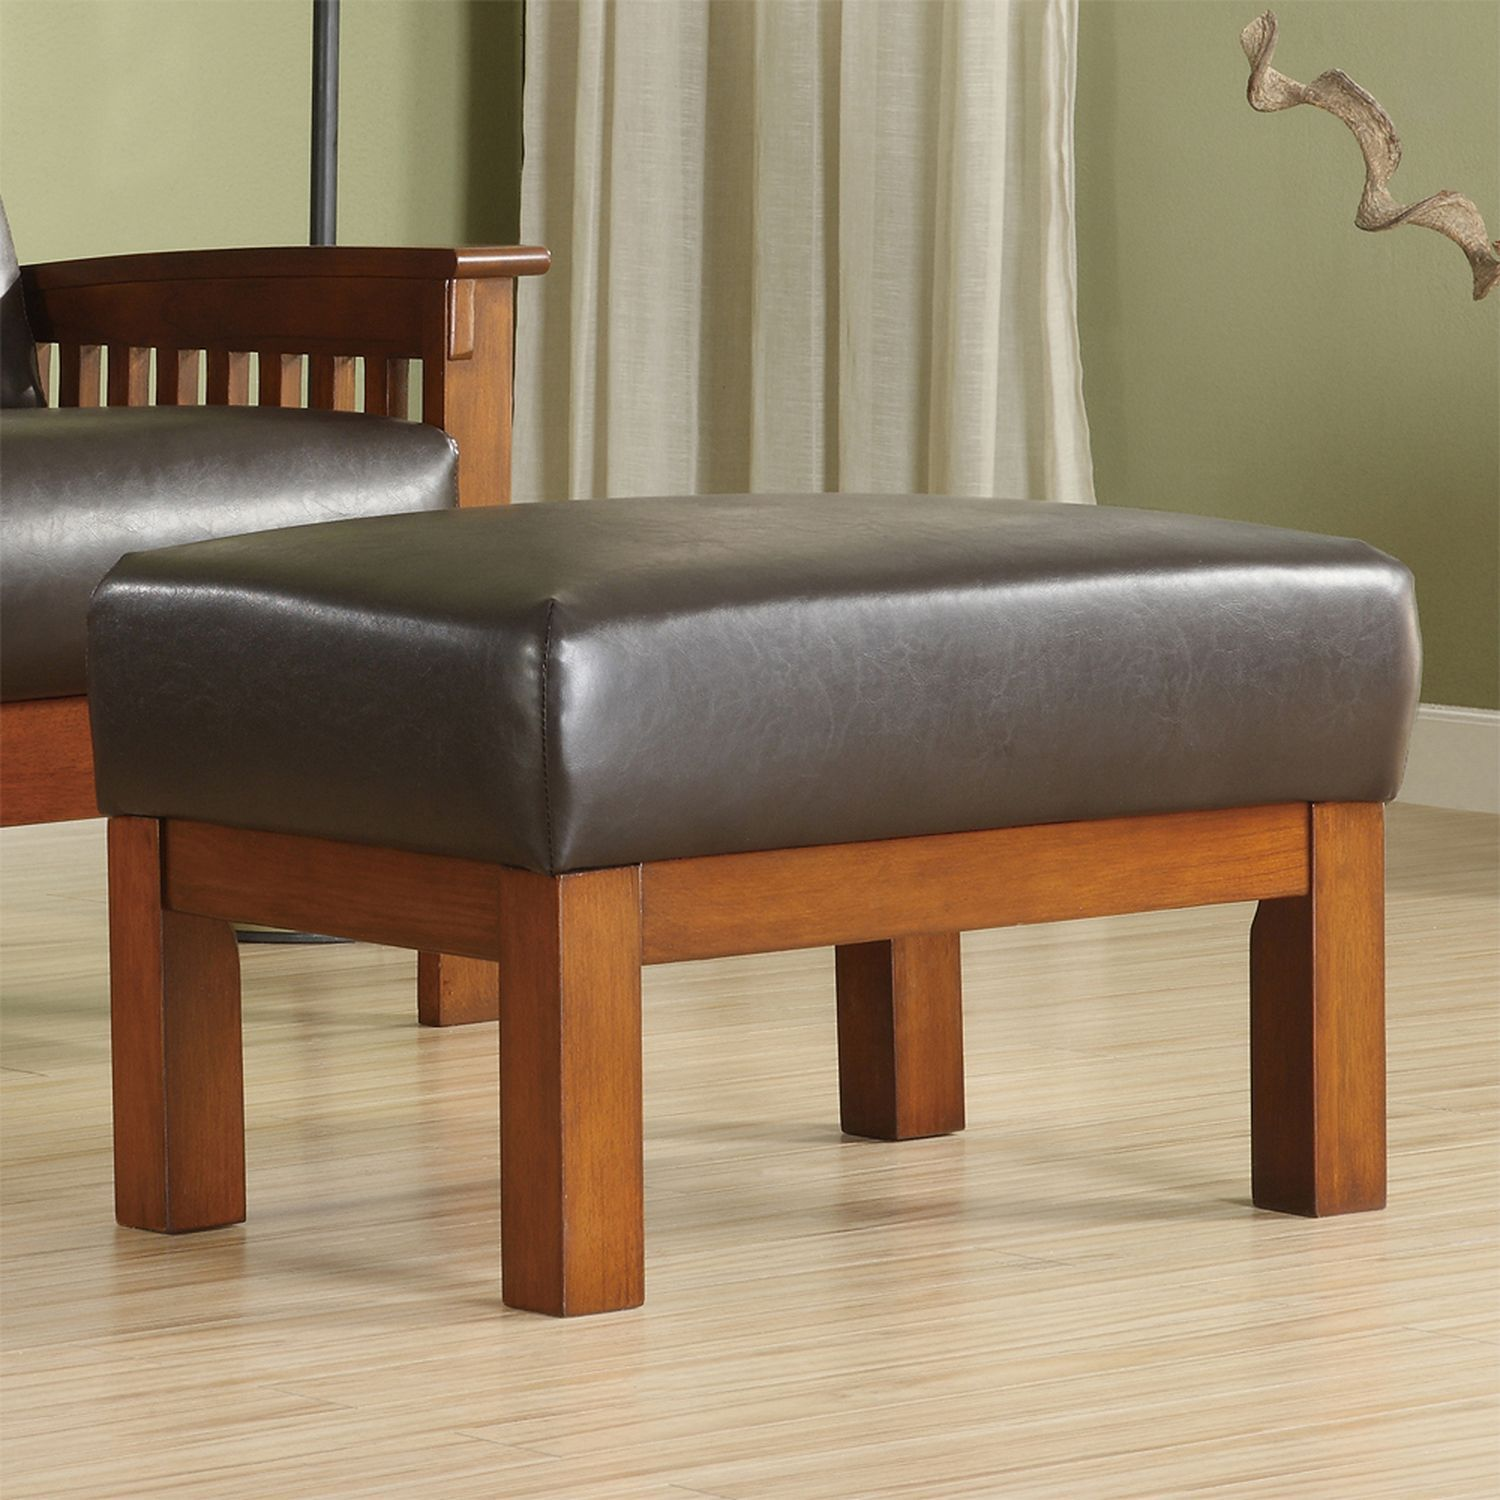 Calantha faux leather ottoman sams club with images